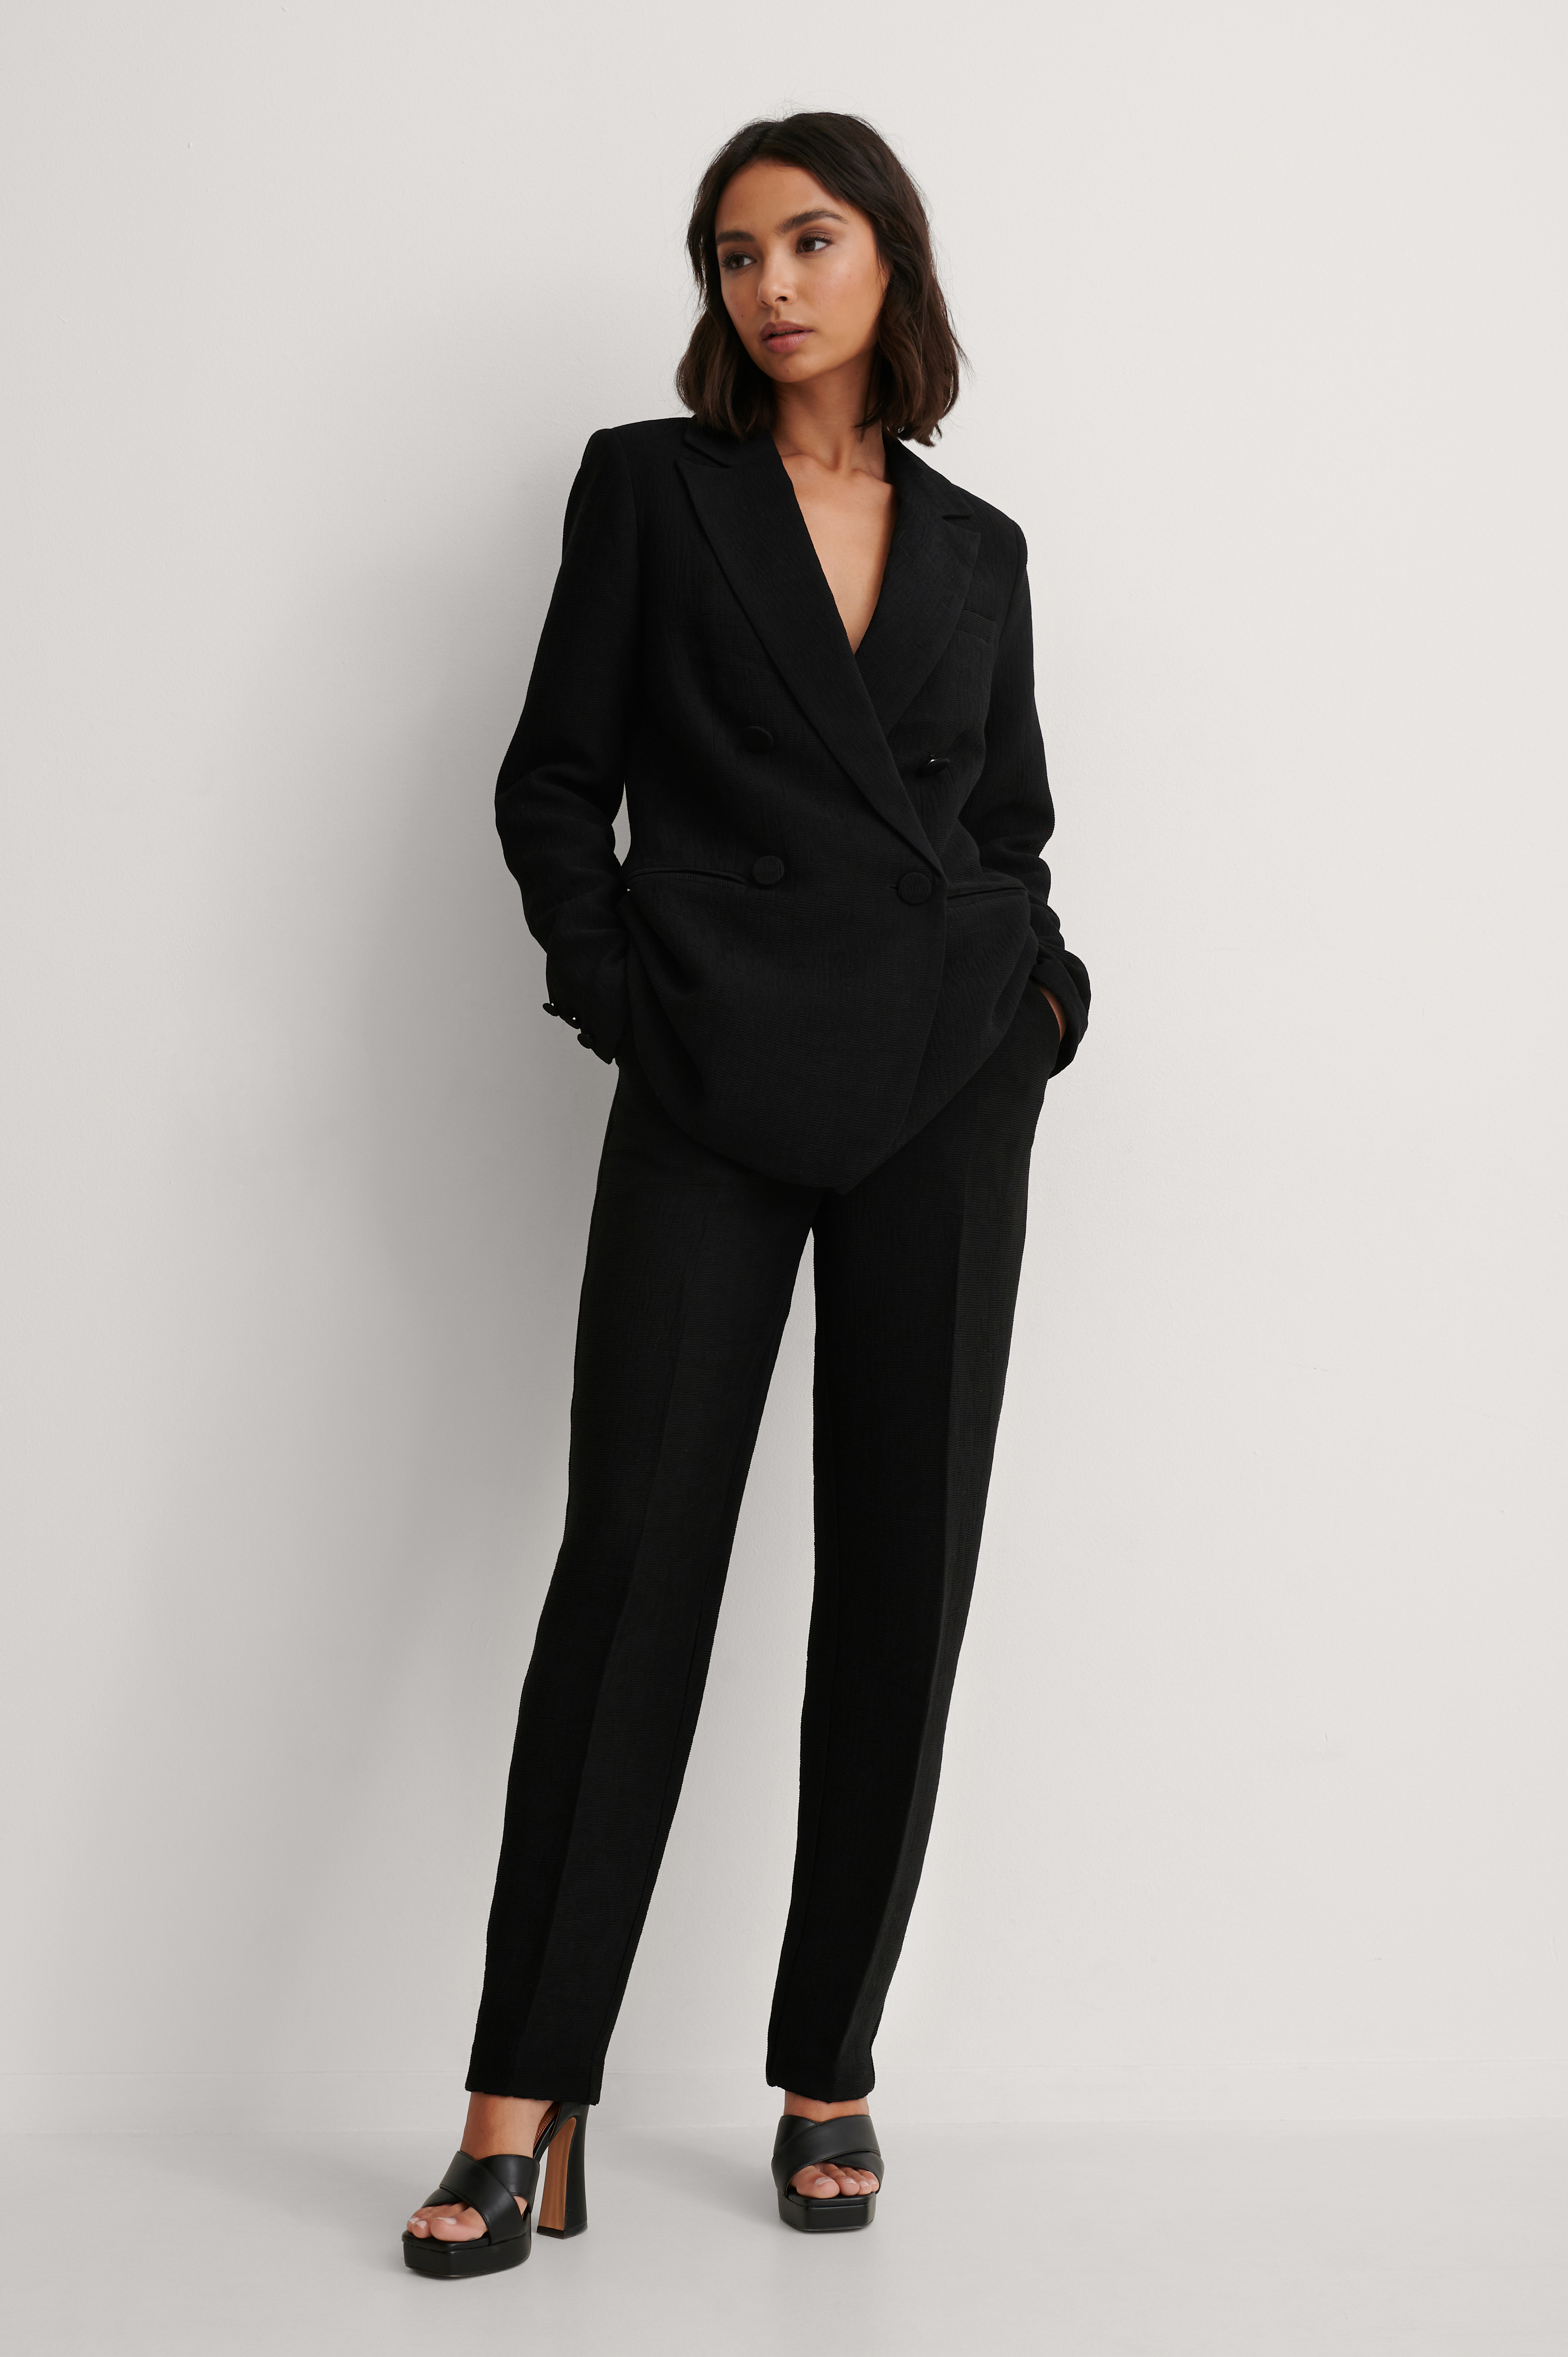 Black Structured Suit Pants